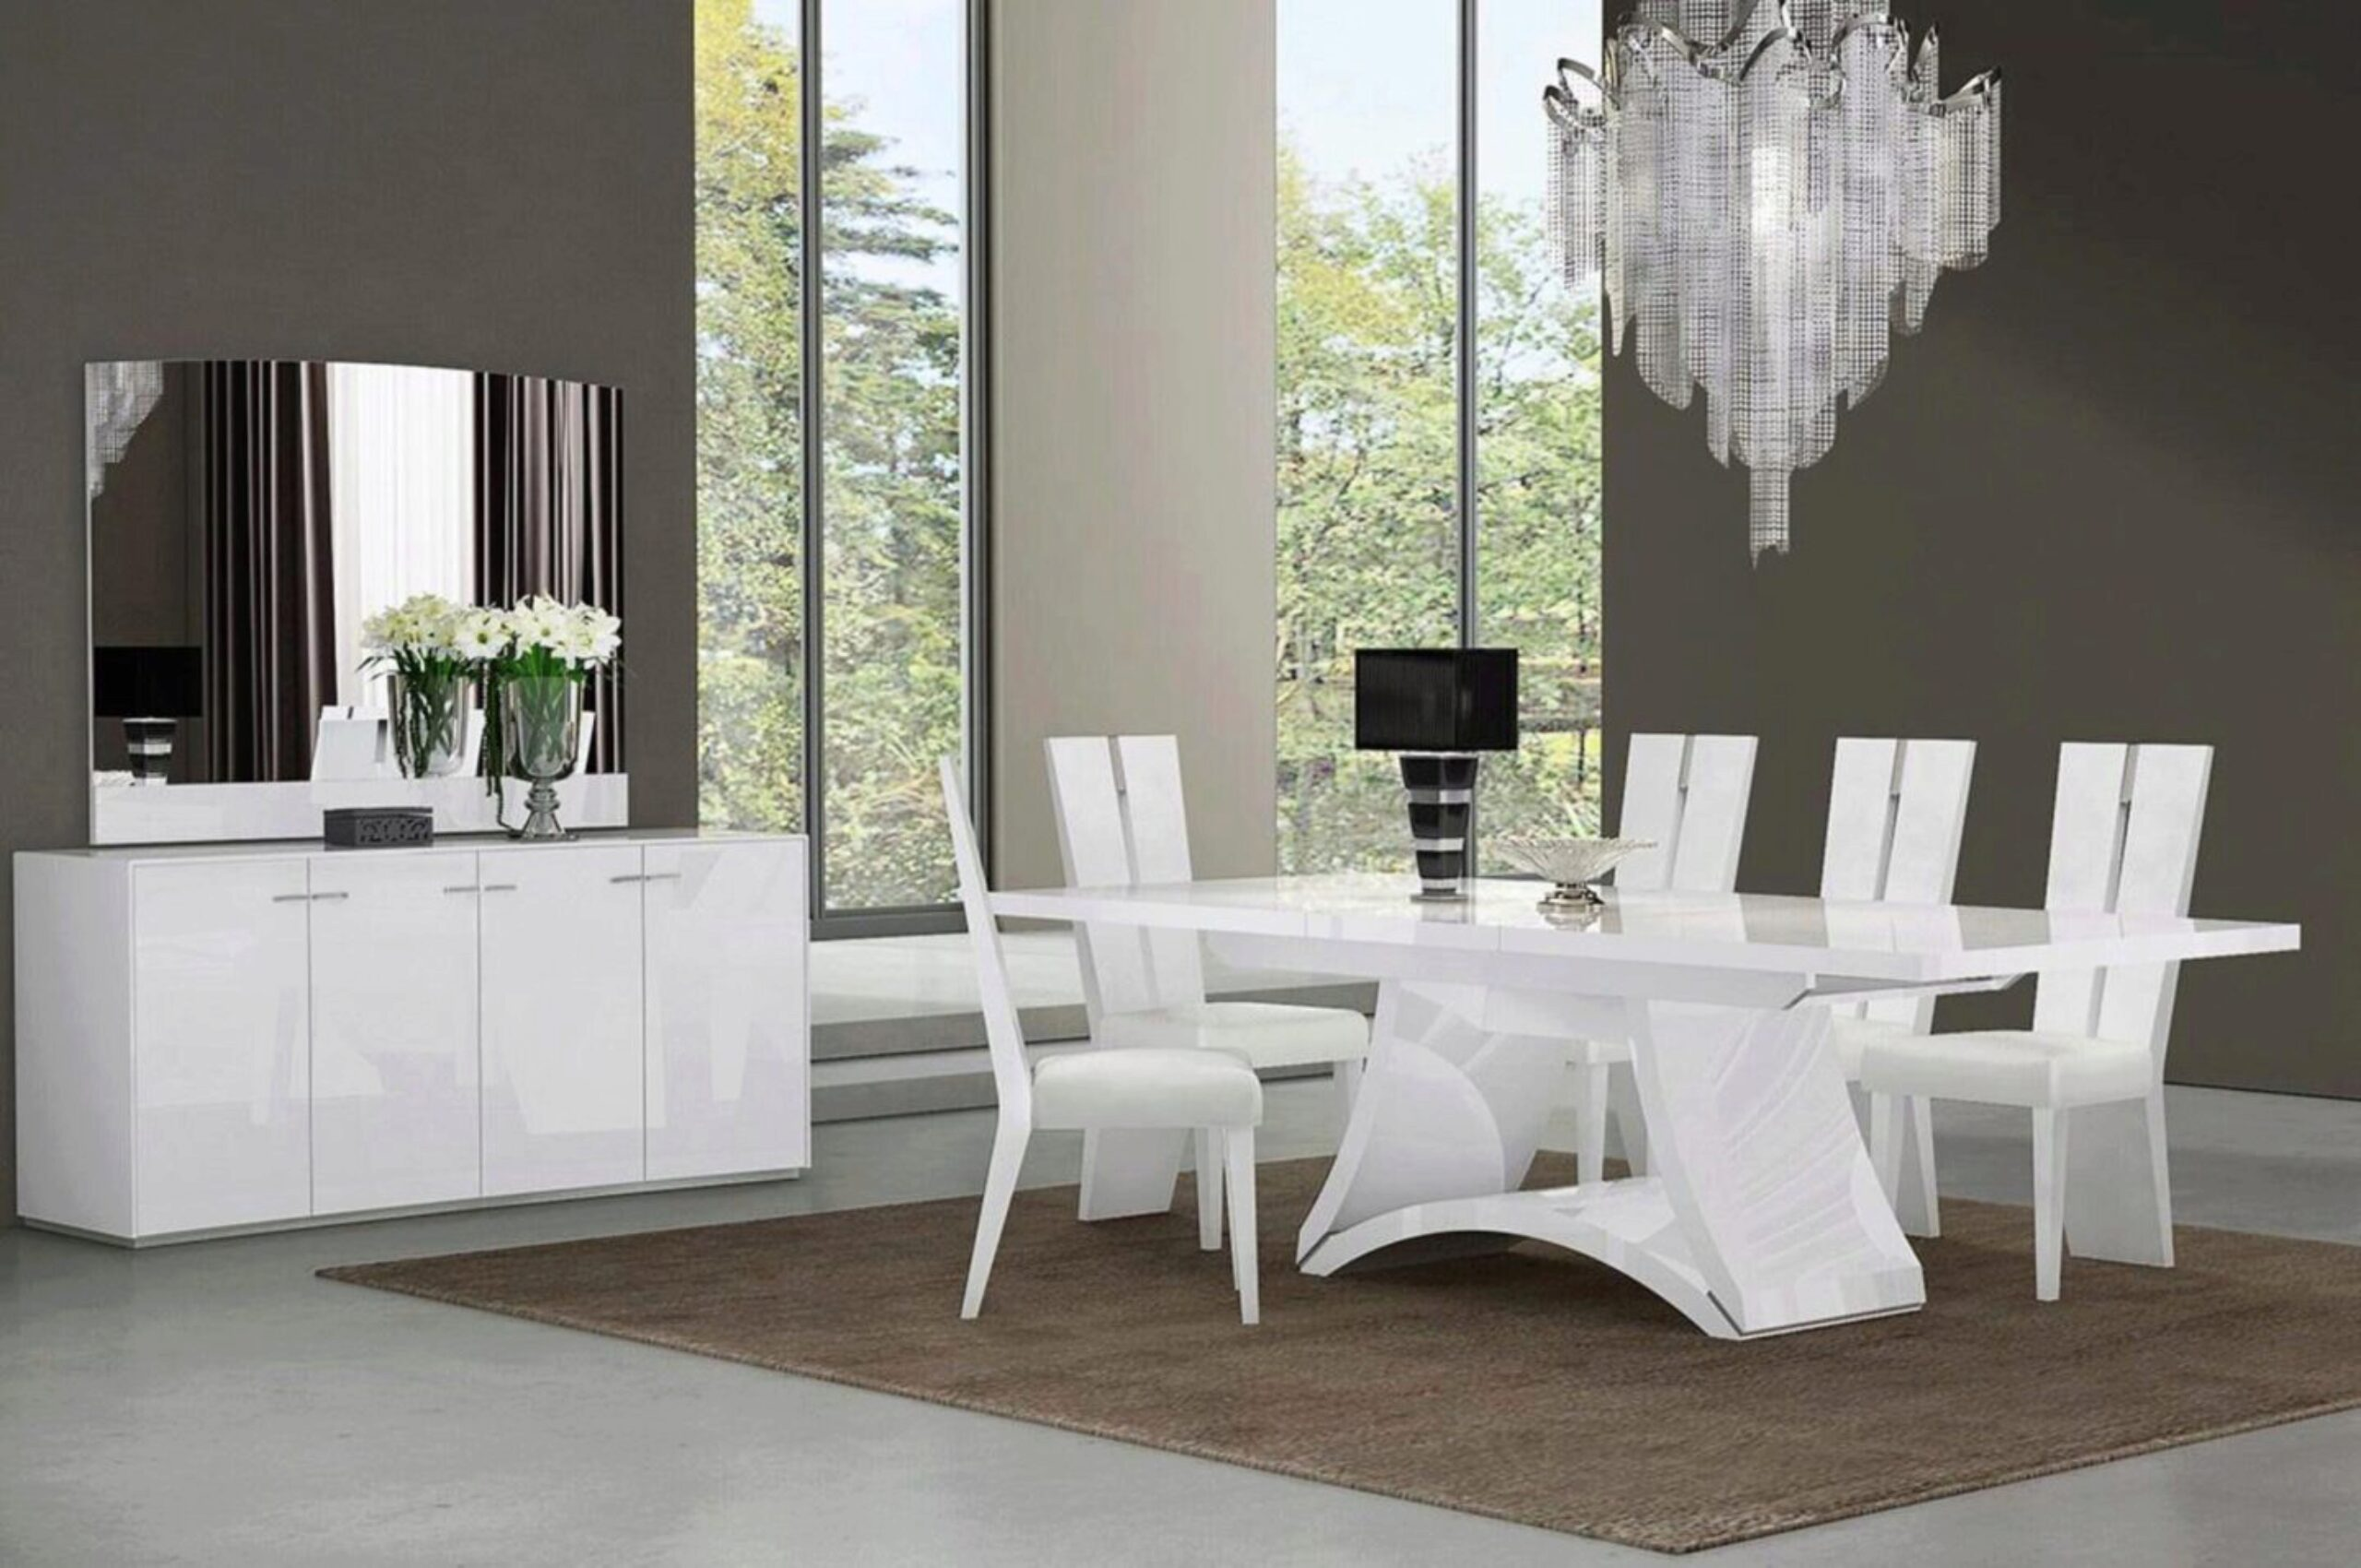 White Lacquer Dining Table Set 7pcs, Modern Contemporary Dining Room Table Set